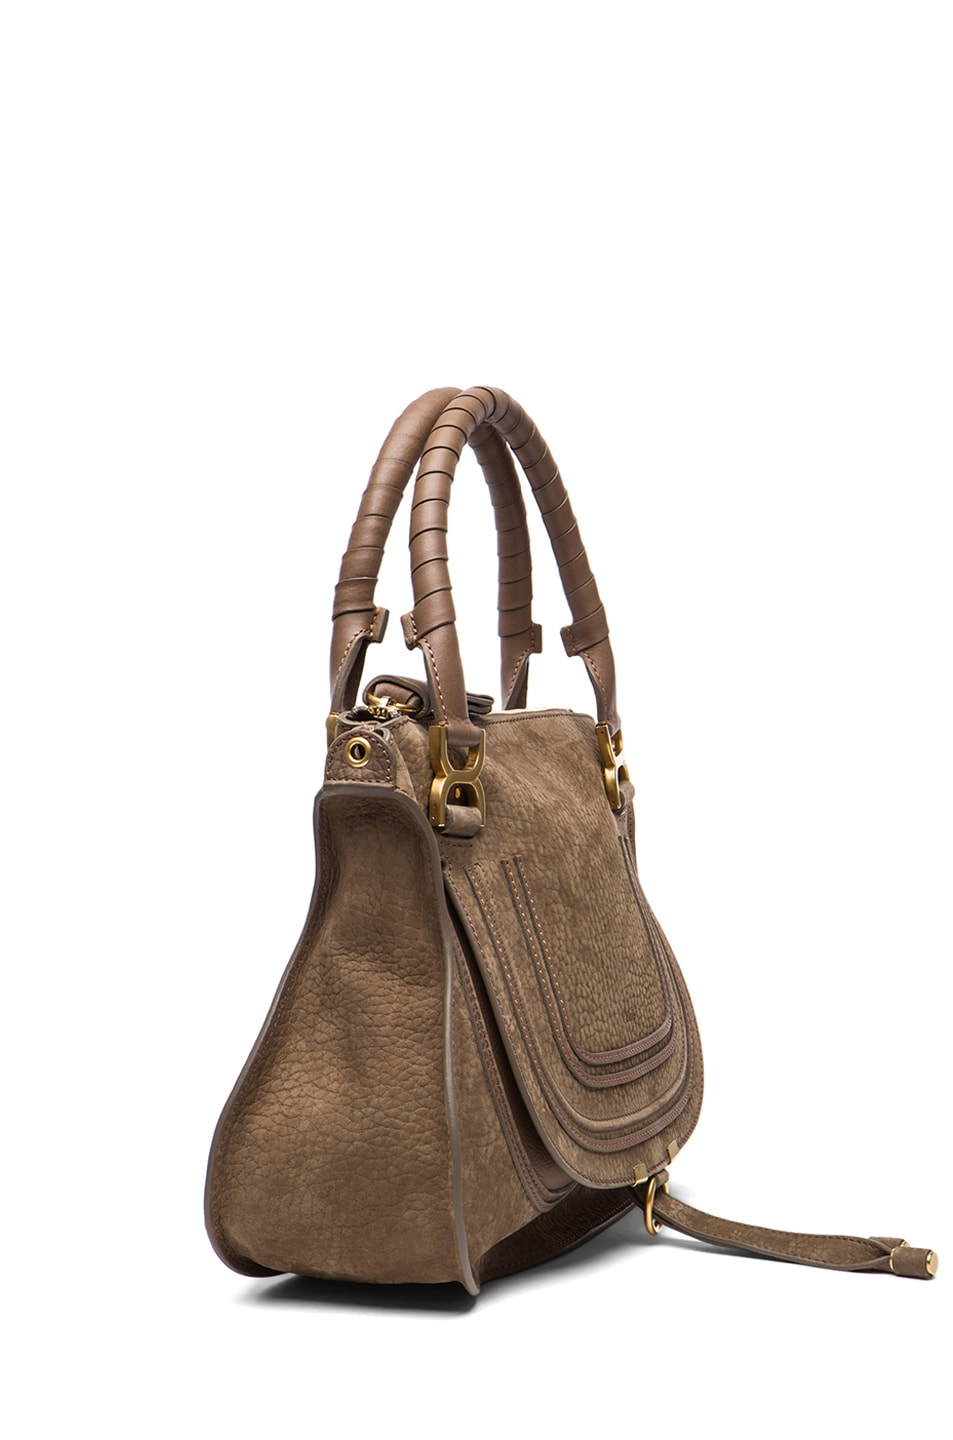 Image 3 of Chloe Medium Marcie Shoulder Bag in Moss Touch